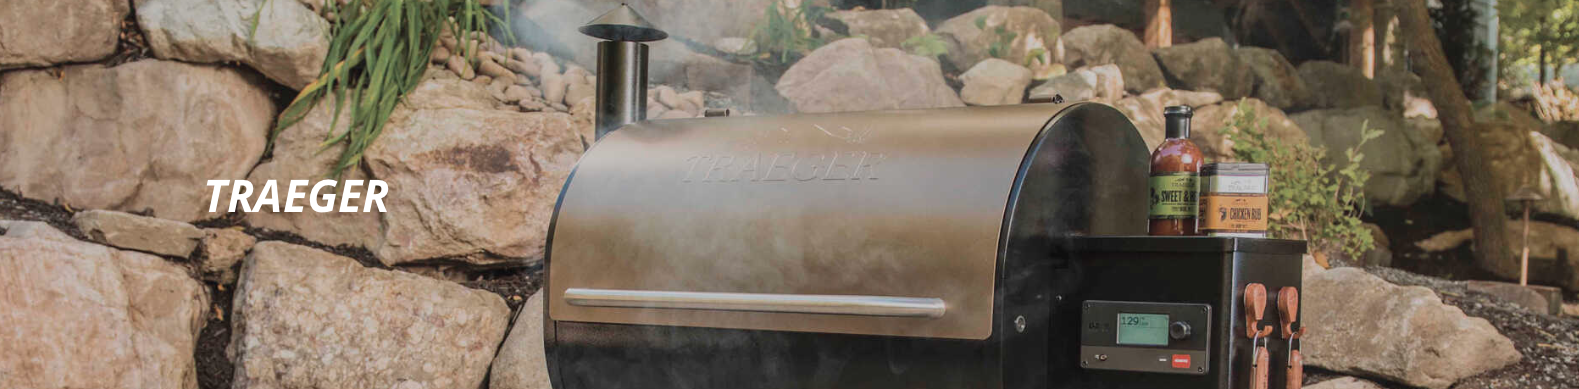 new traeger smokers grills for sale near lloydminster canada